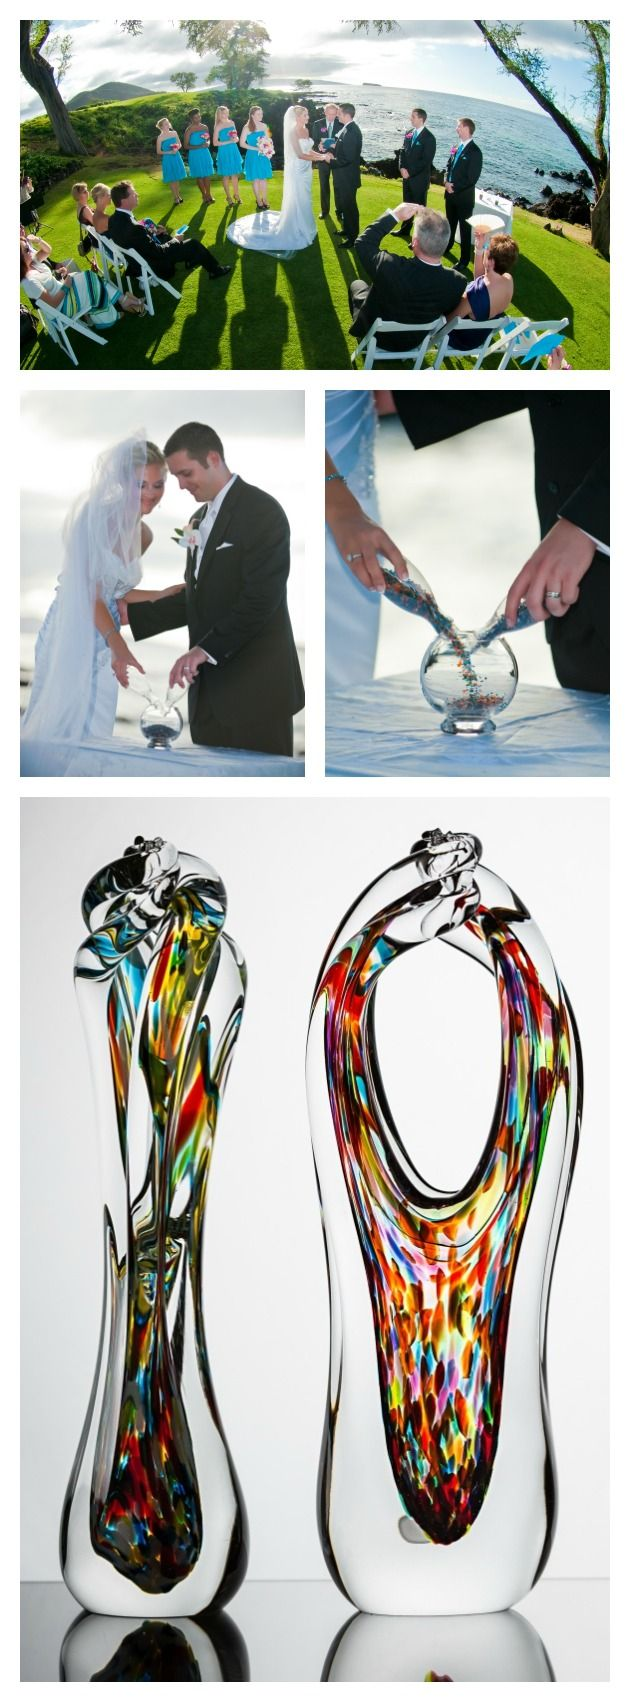 The most unique and elegant ceremony idea. Mix glass crystals at your wedding and our glass blowers create a one-of-a-kind piece for you, so you can hold on to the memories for a lifetime...